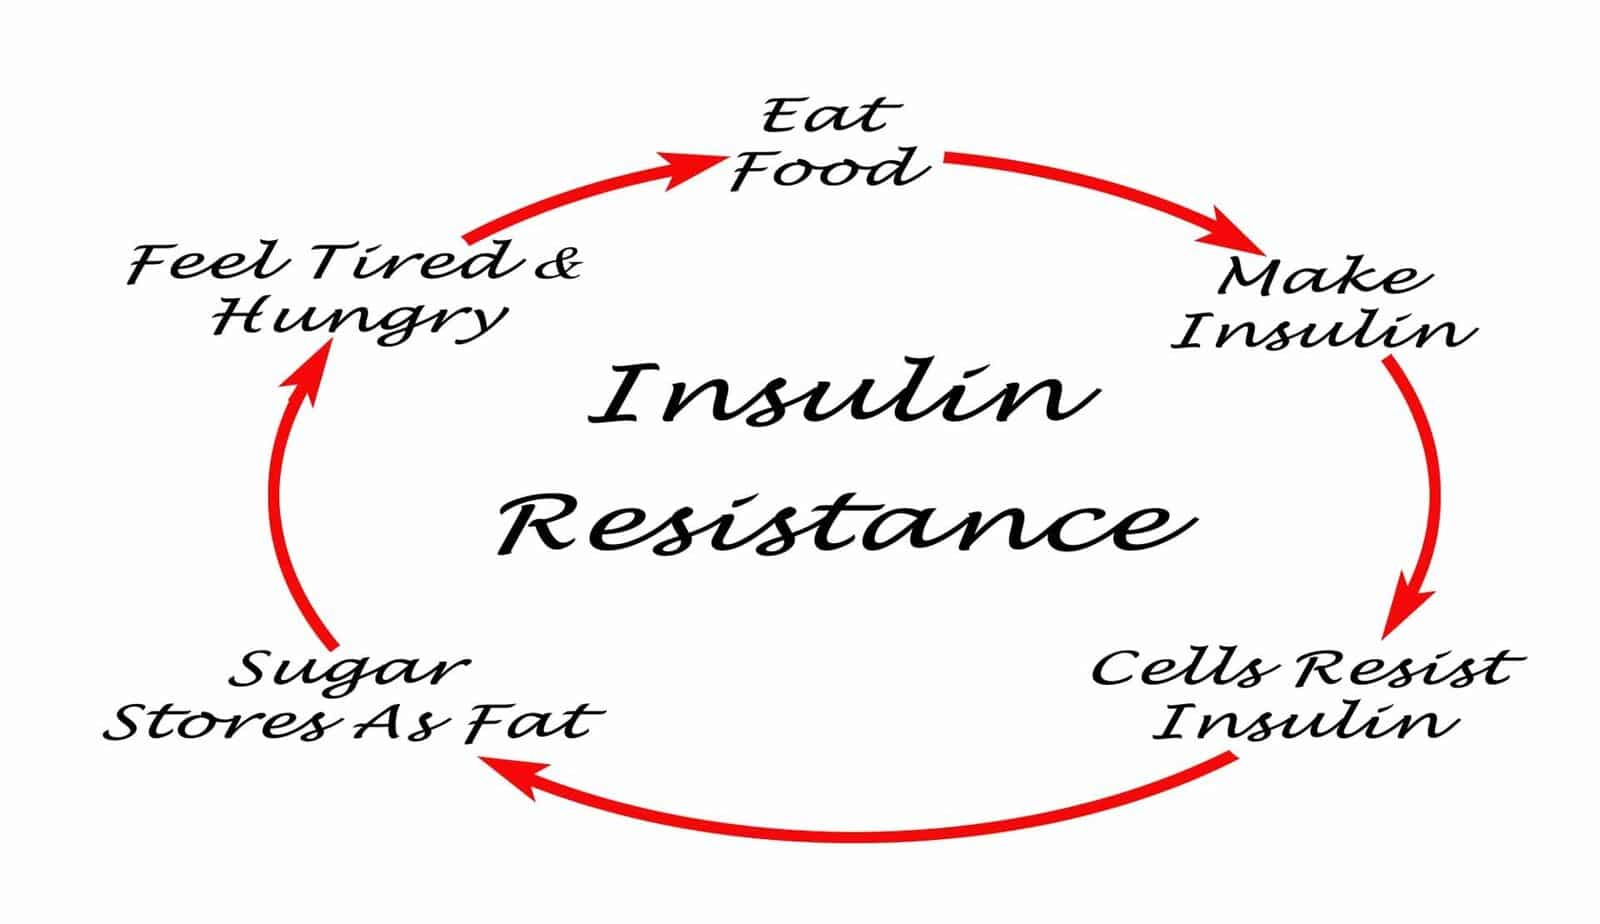 fasting insulin test insulin resistance